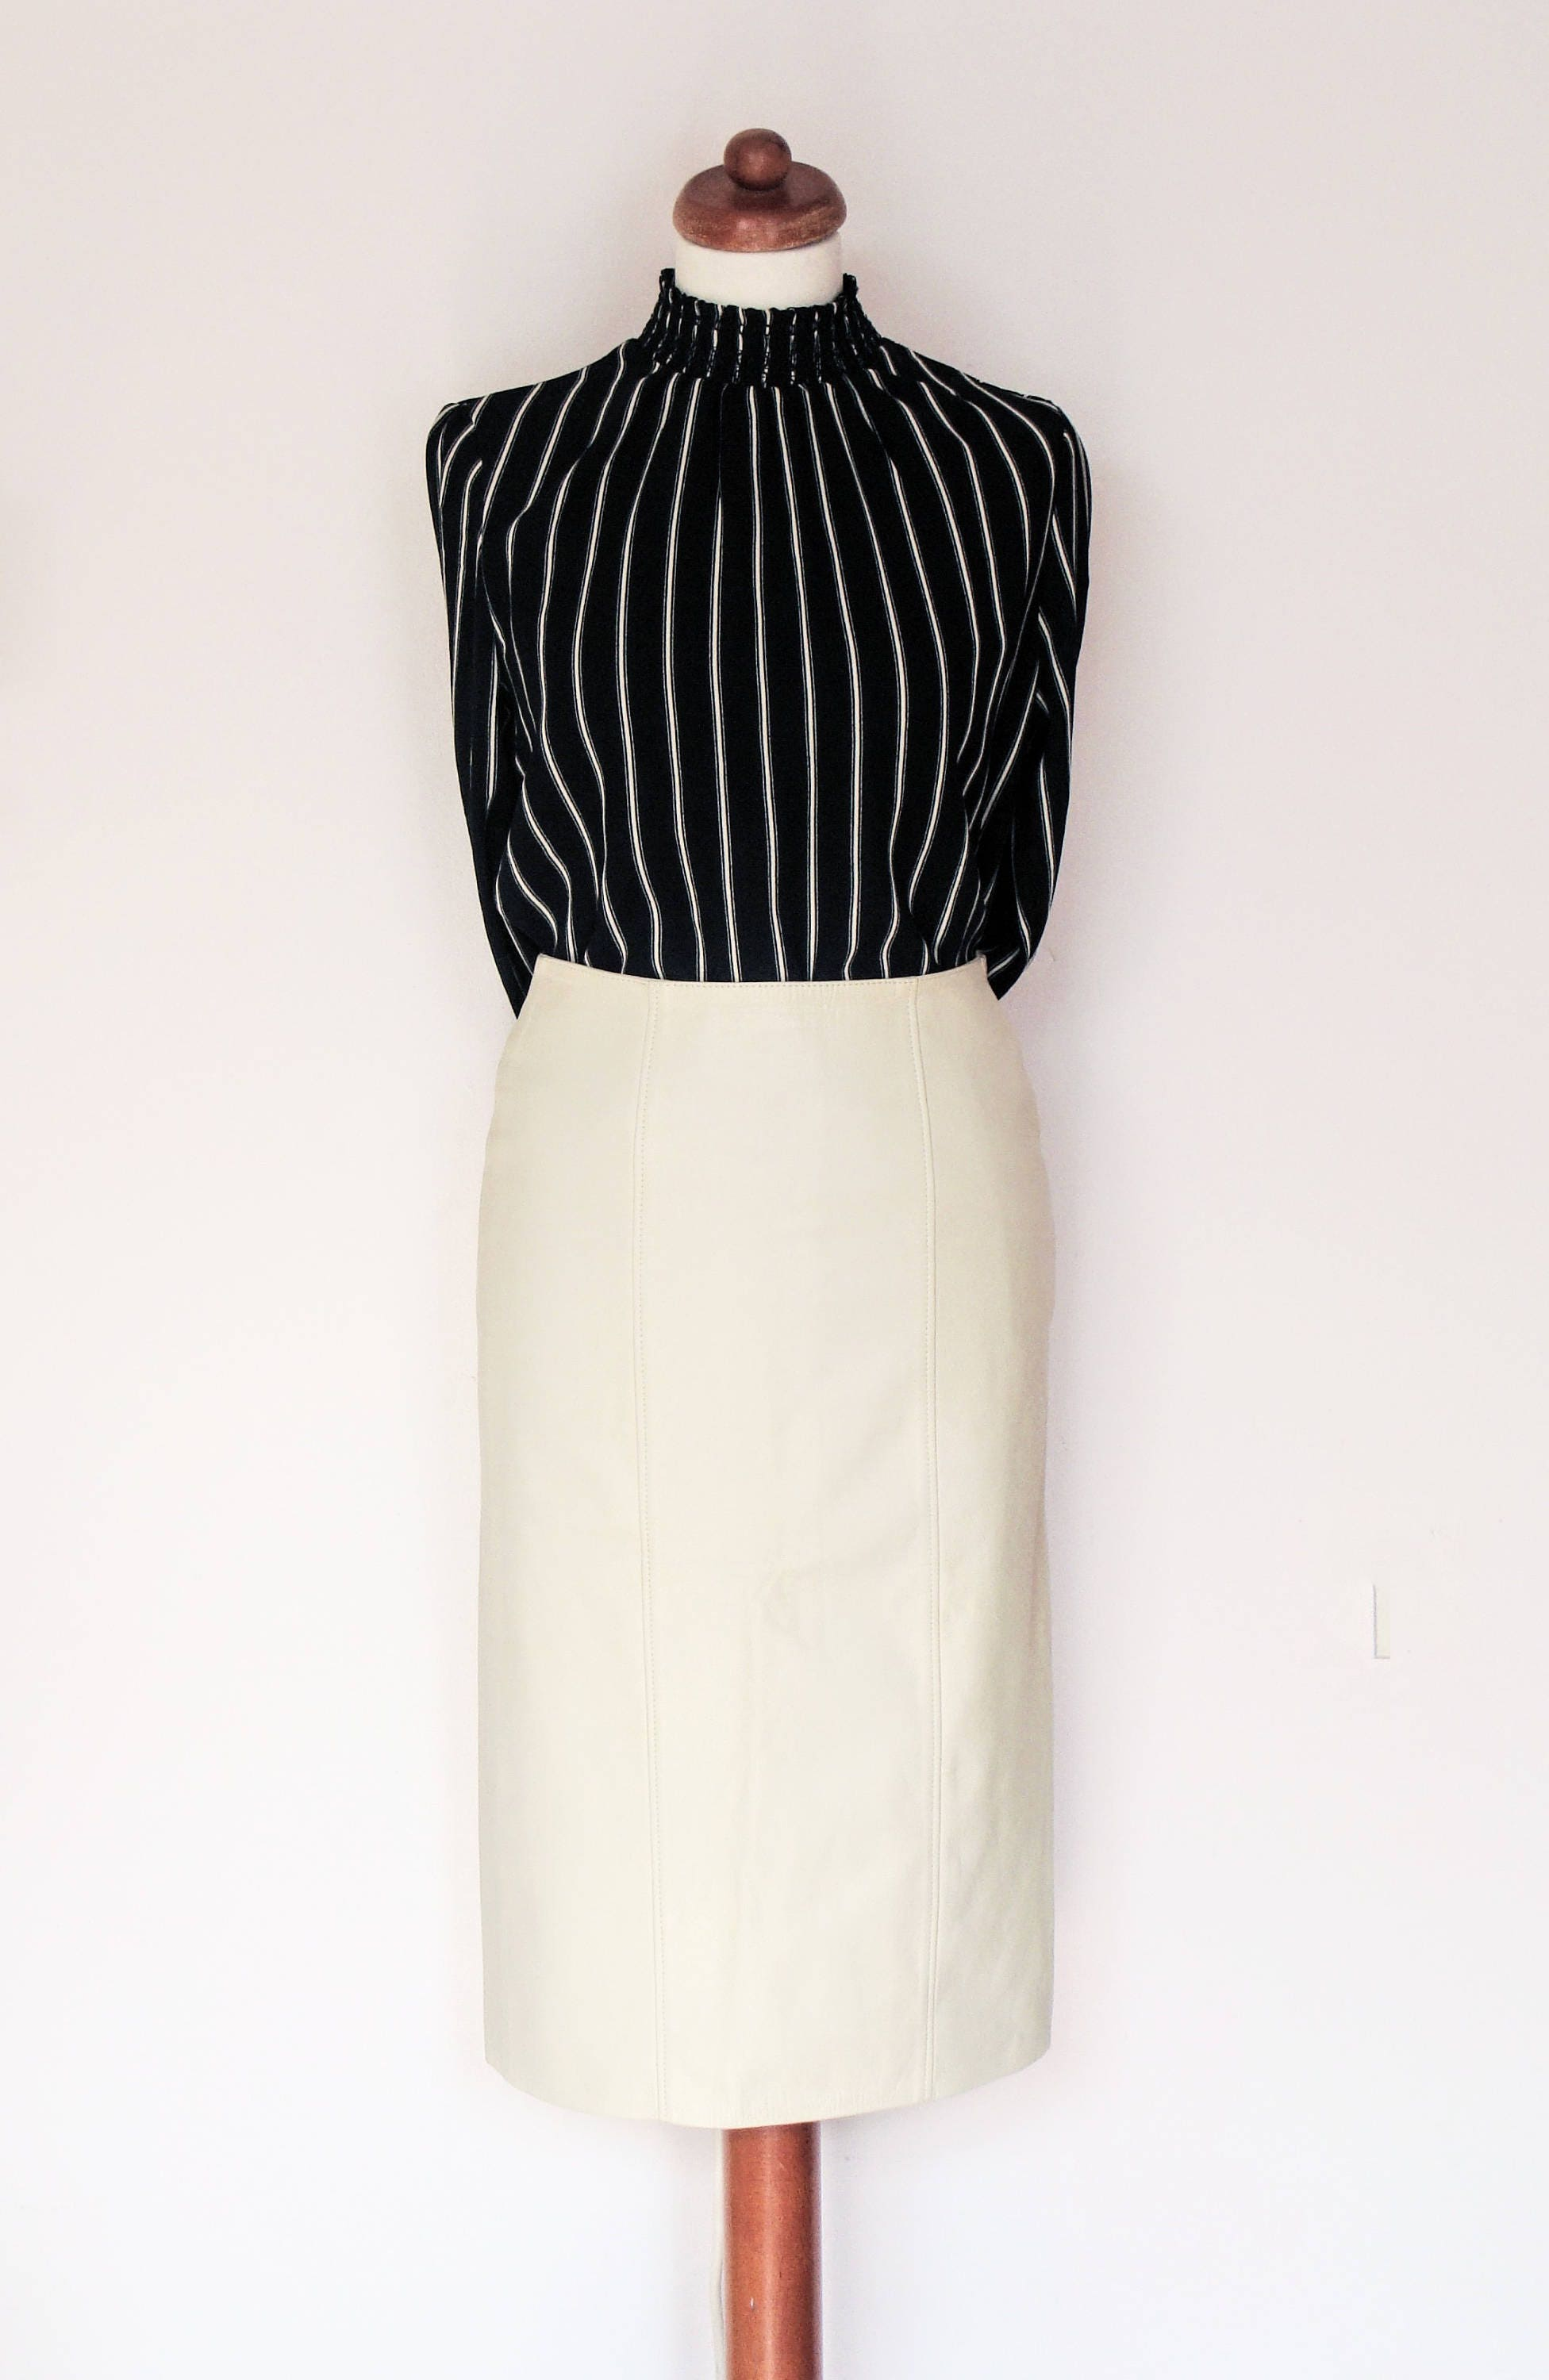 d46c449499 Vintage Italian Cream Leather Pencil Skirt / Vera Pelle / Size UK 8-10